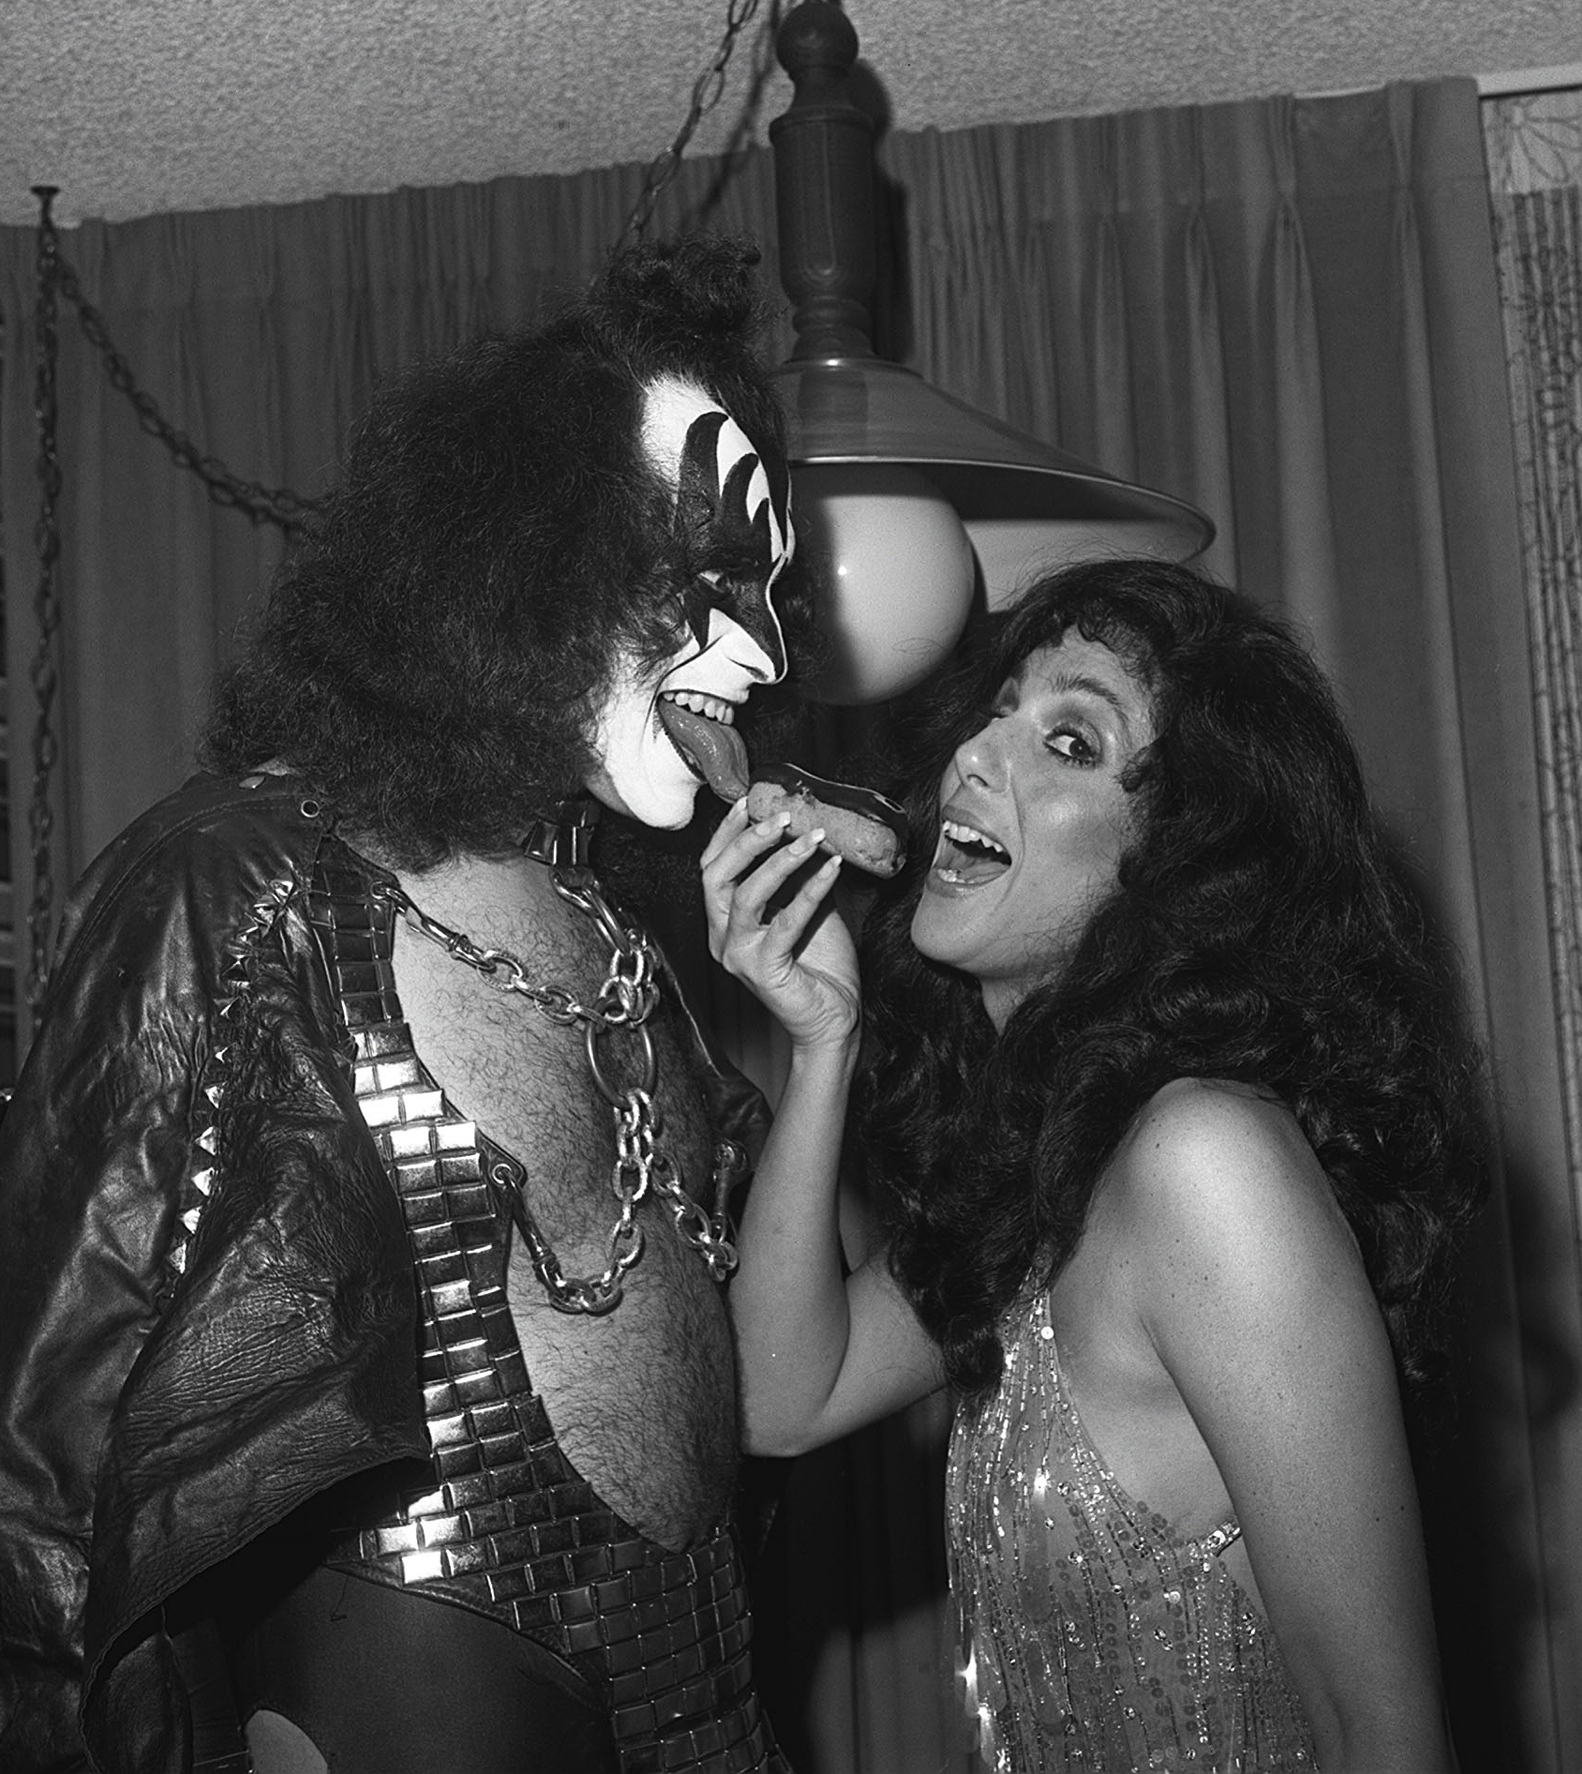 Classic Photo: Gene Simmons & Cher with an Eclair | Sonic